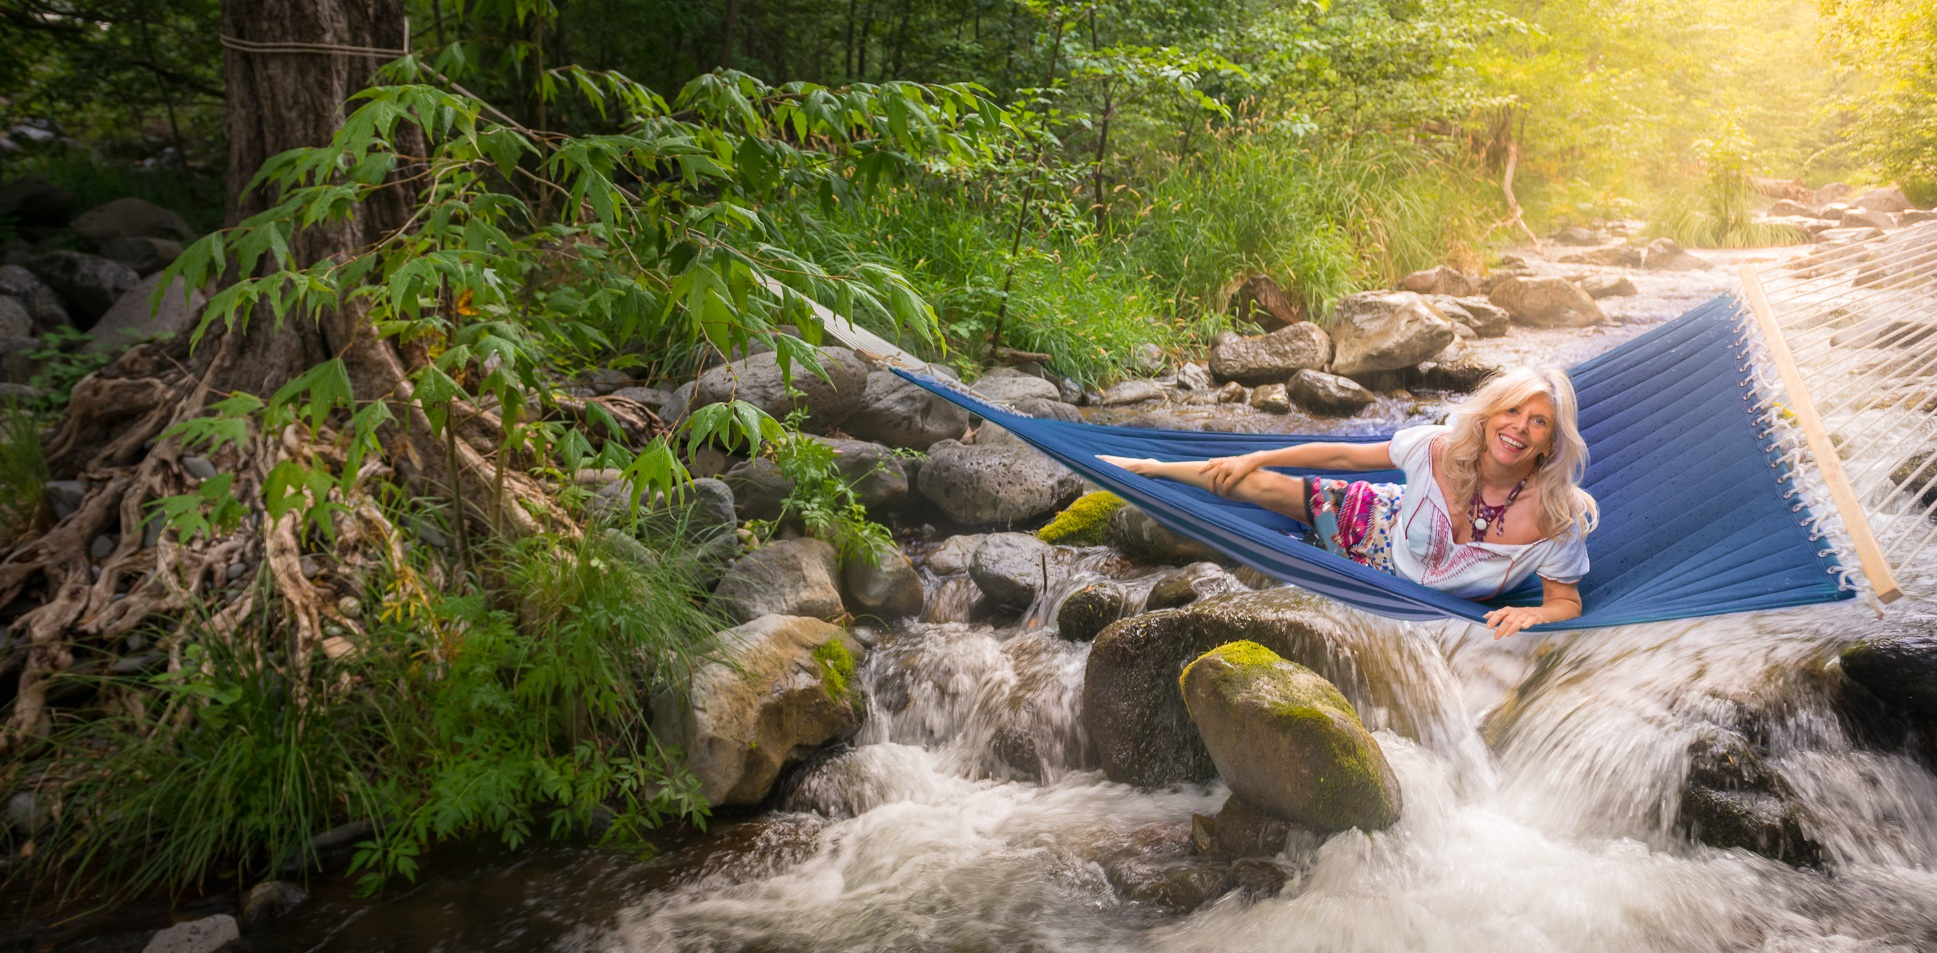 rhianne+in+hammock+over+creek.jpg